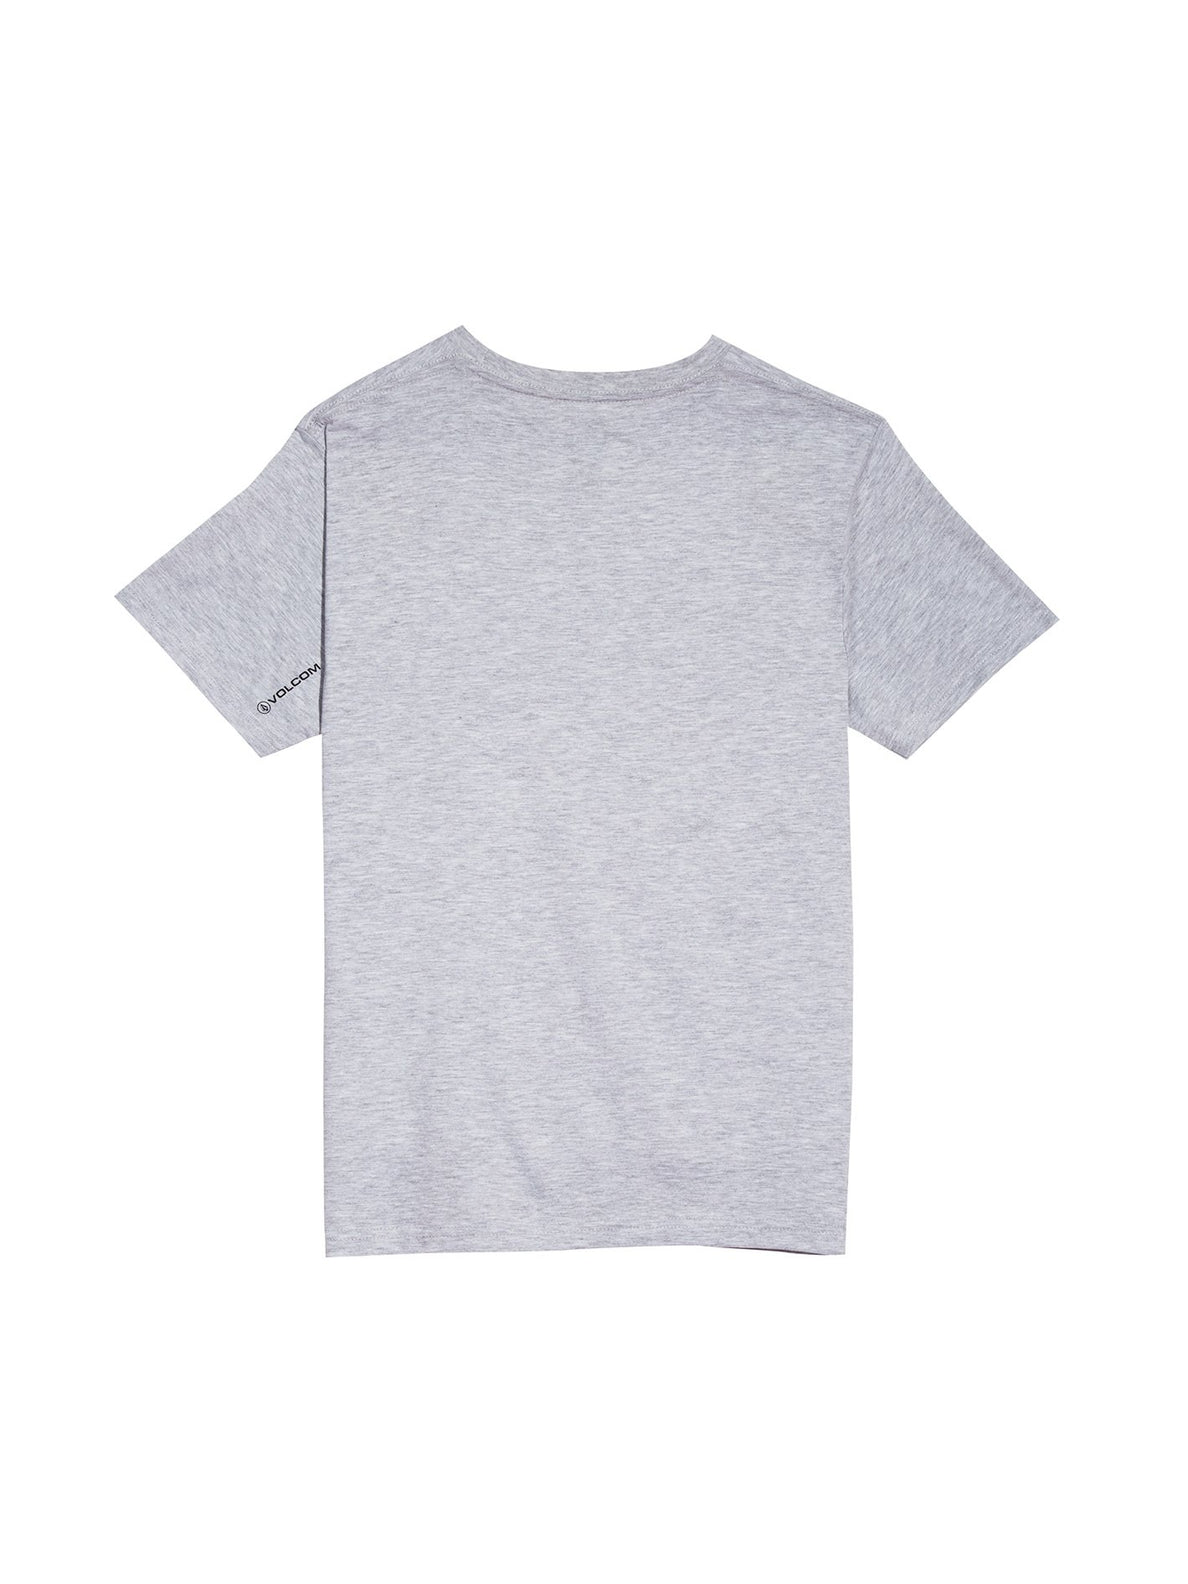 comes-around-bsc-ss-heather-grey-1(Kids)